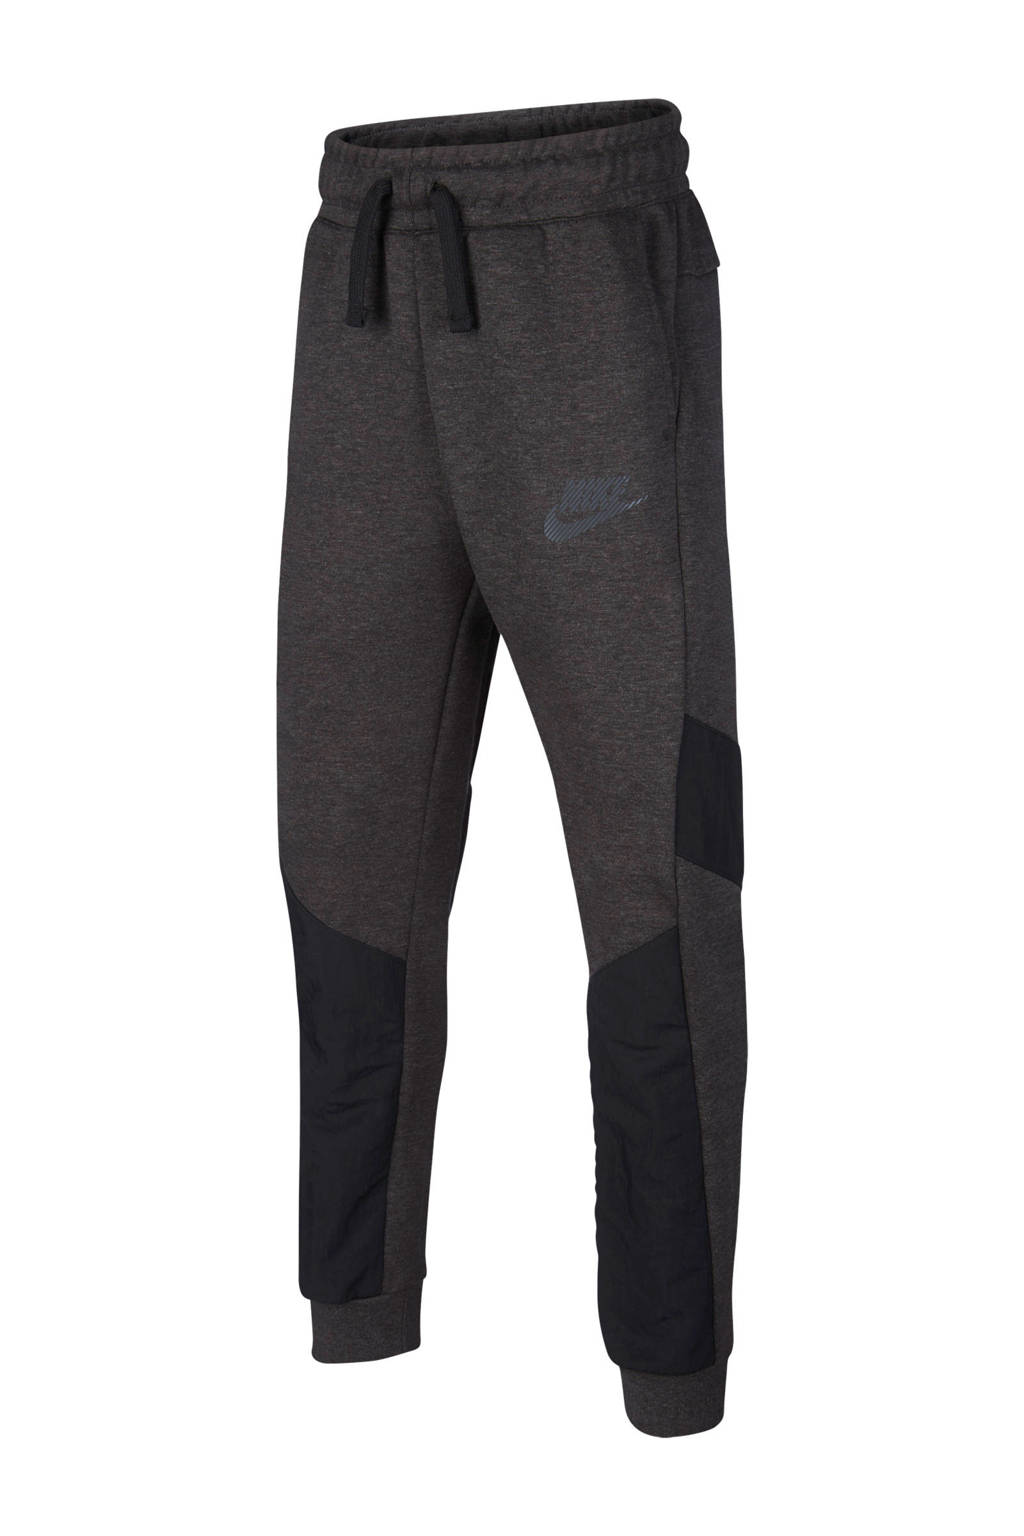 Nike   Tech Fleece joggingbroek antraciet, Antraciet